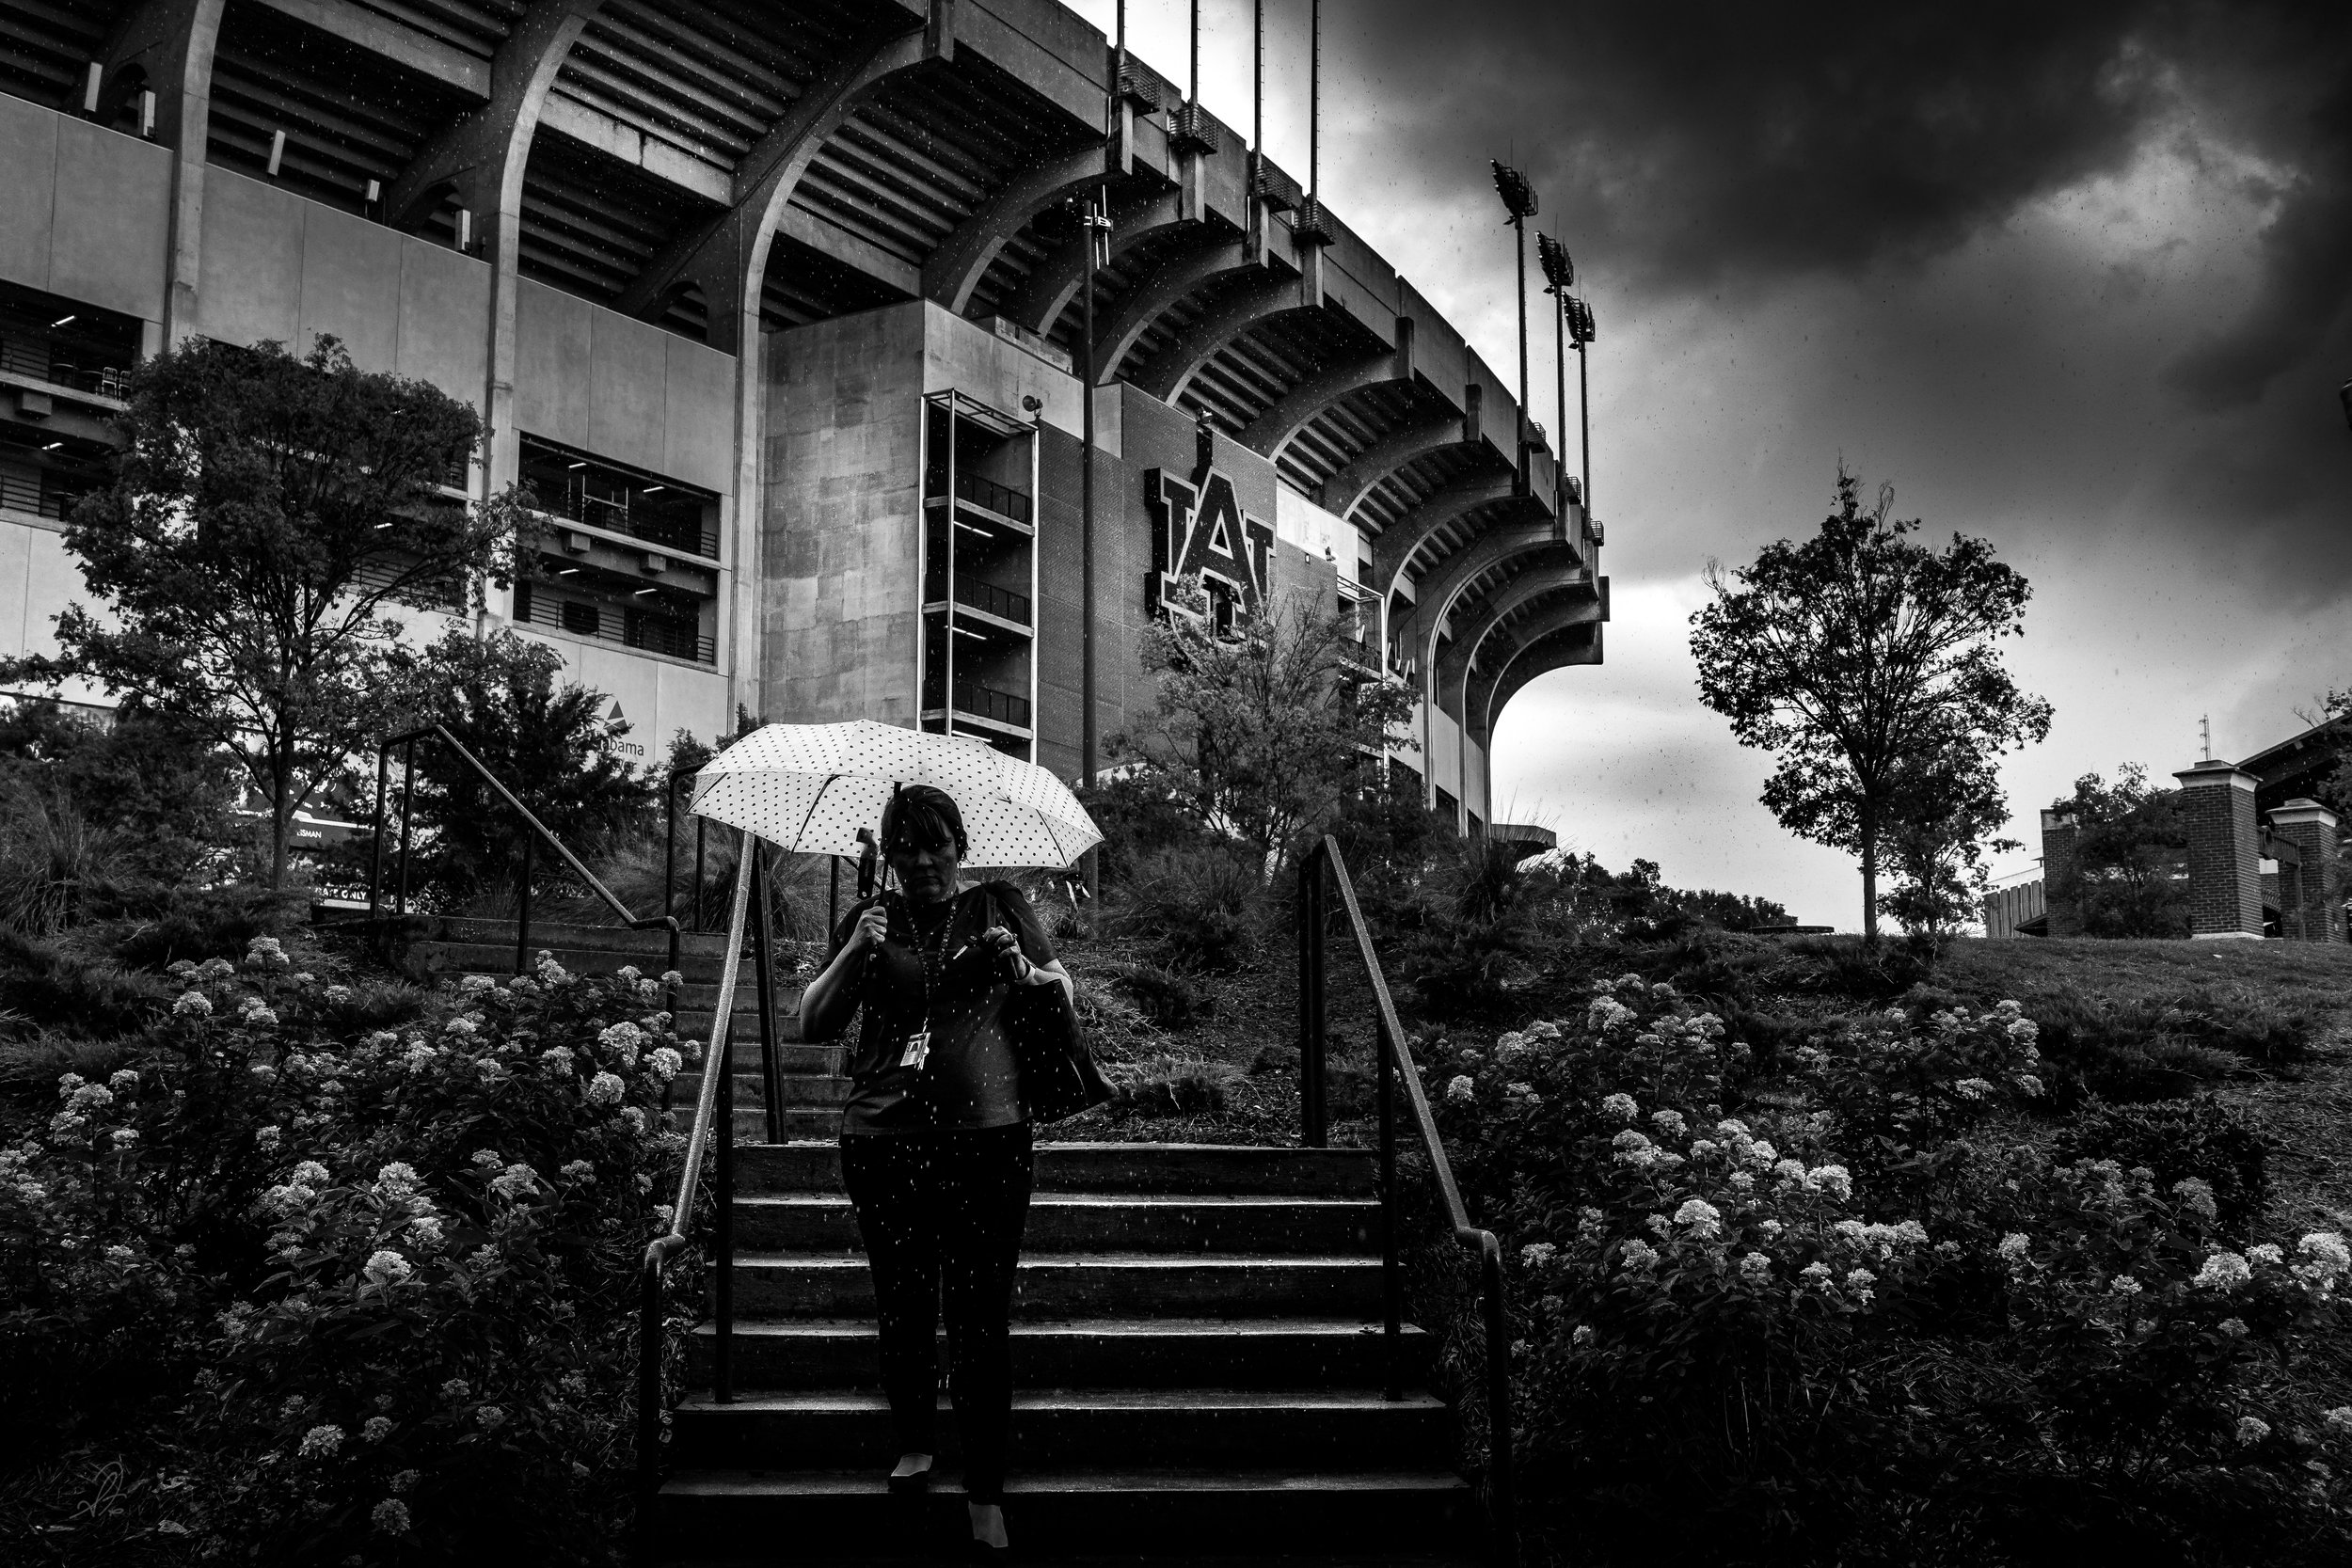 Jordan-Hare Rainy Day